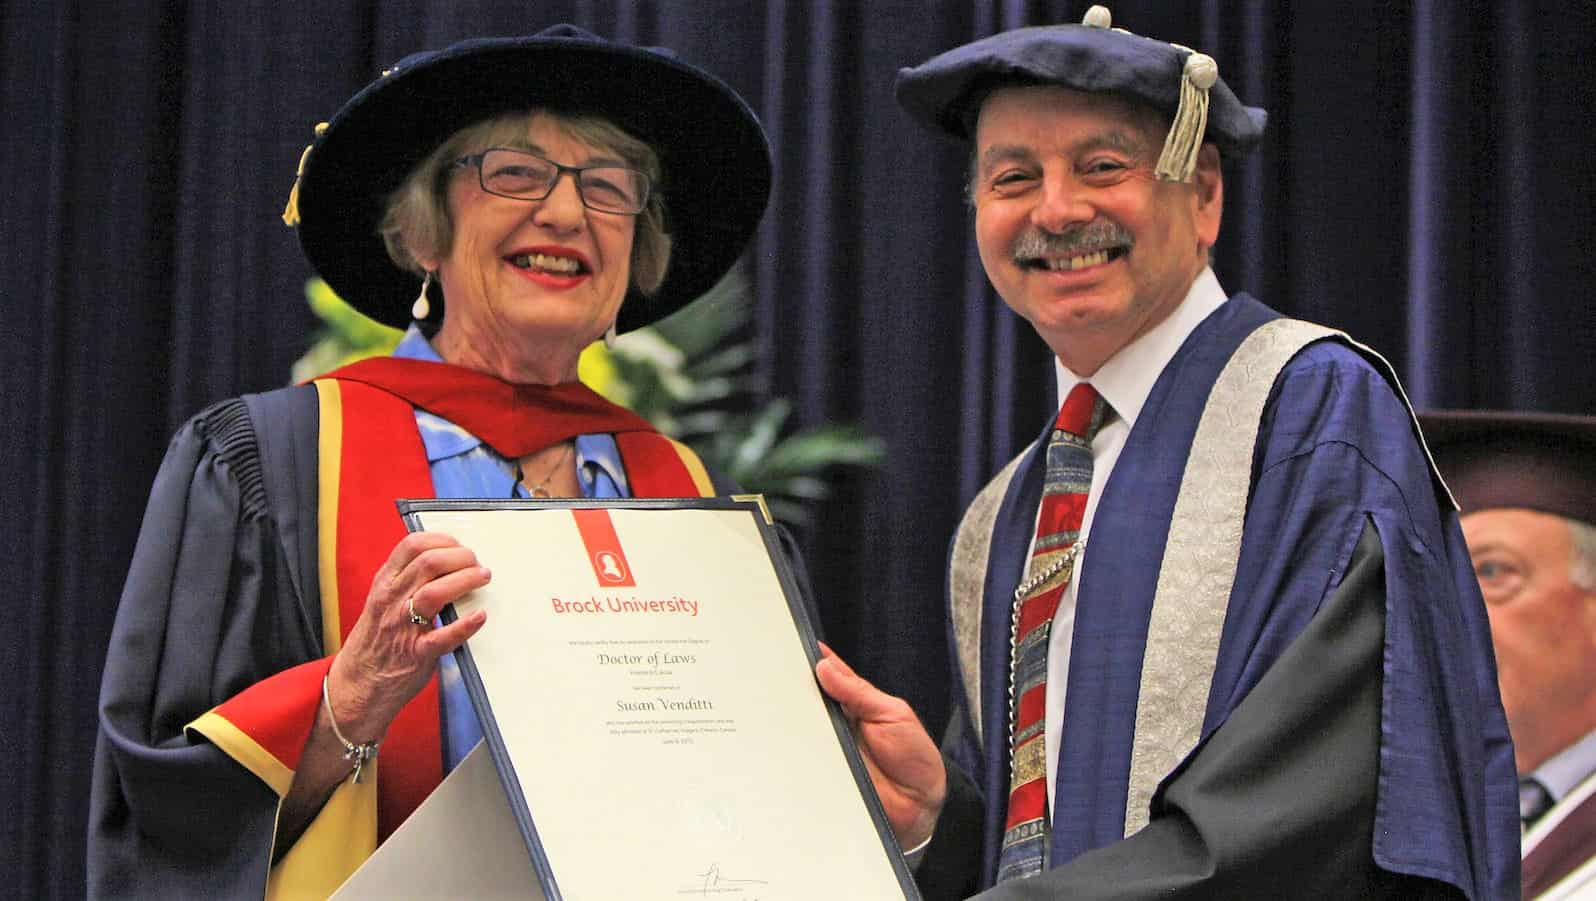 susan_venditti_executive_director_of_start_me_up_niagara_receives_an_honorary_degree_from_brock_president_jack_lightstone